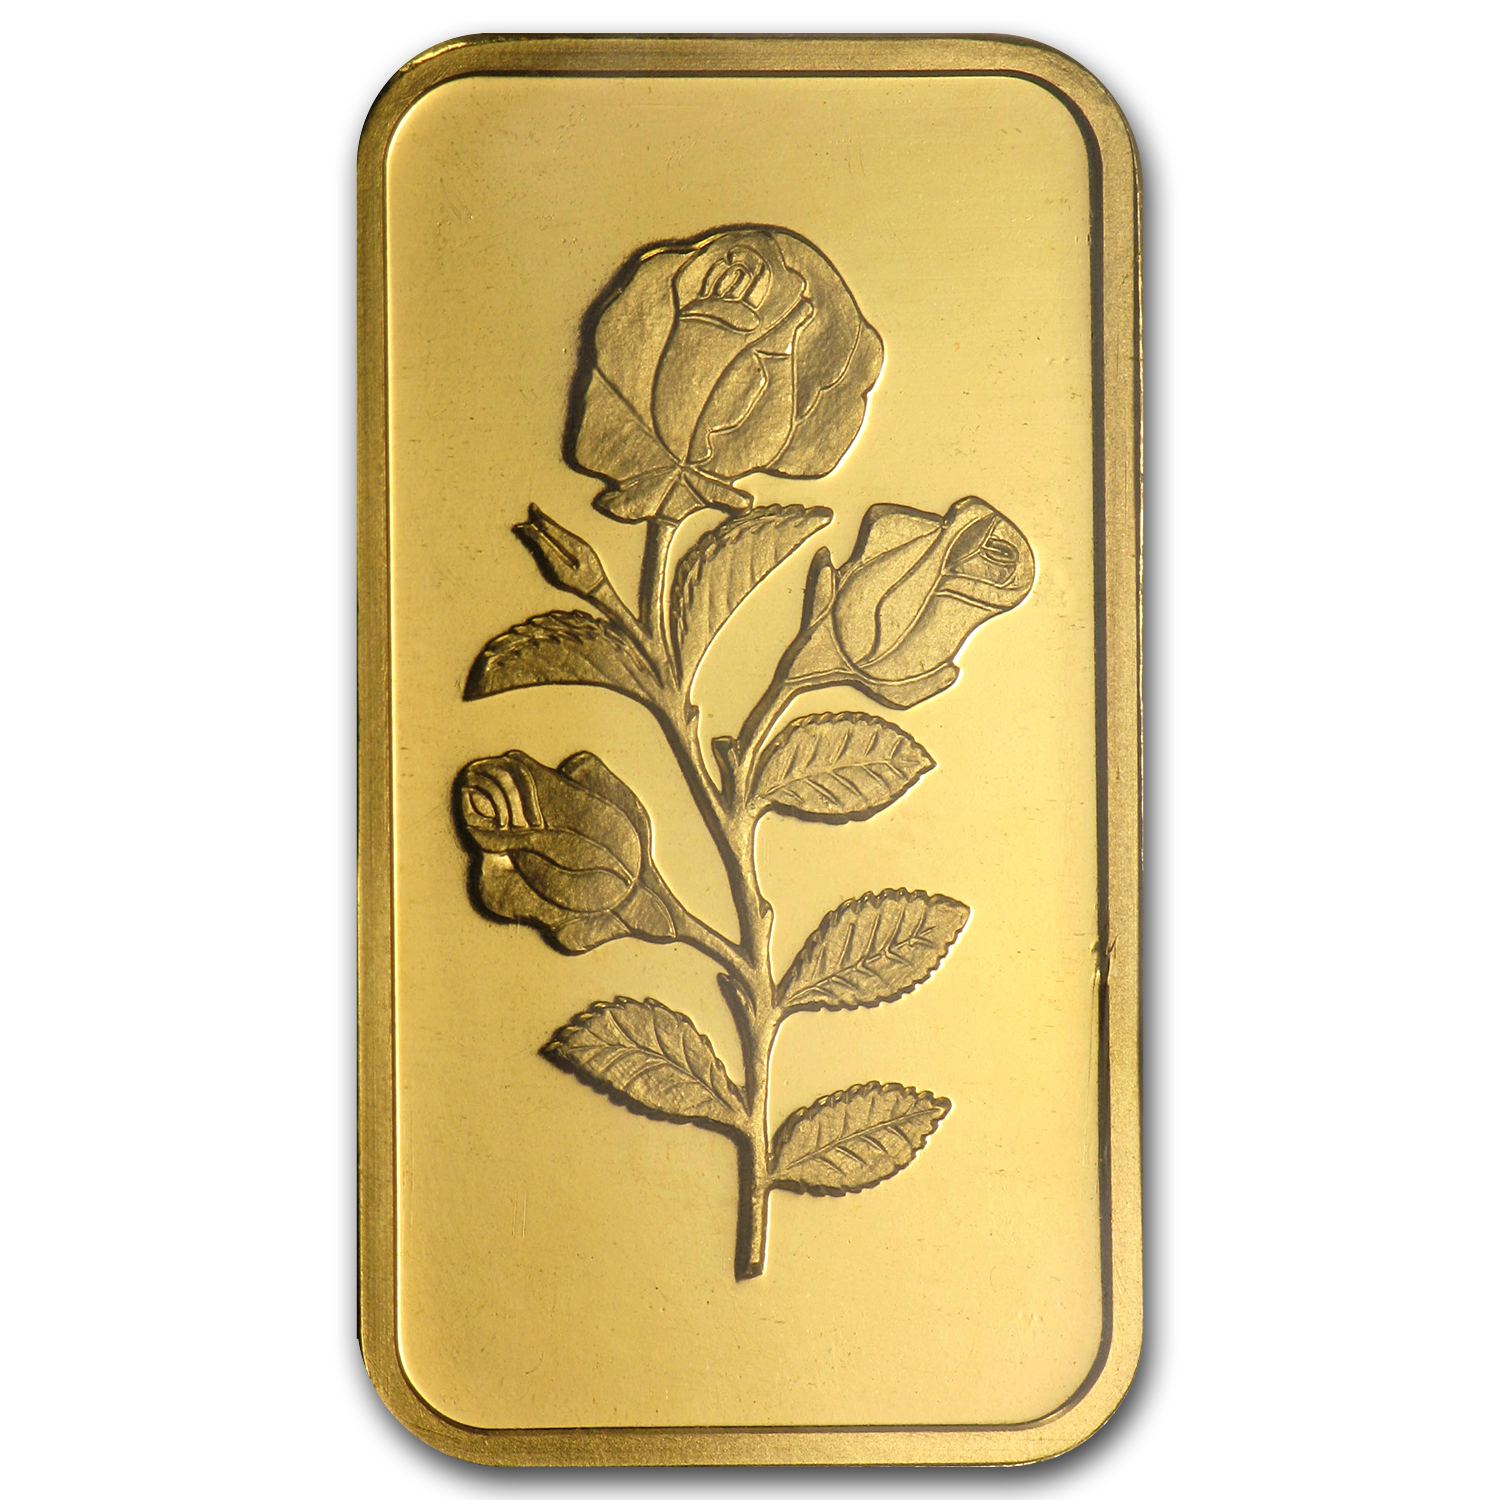 1/2 oz Gold Bars - Pamp Suisse (Rose)